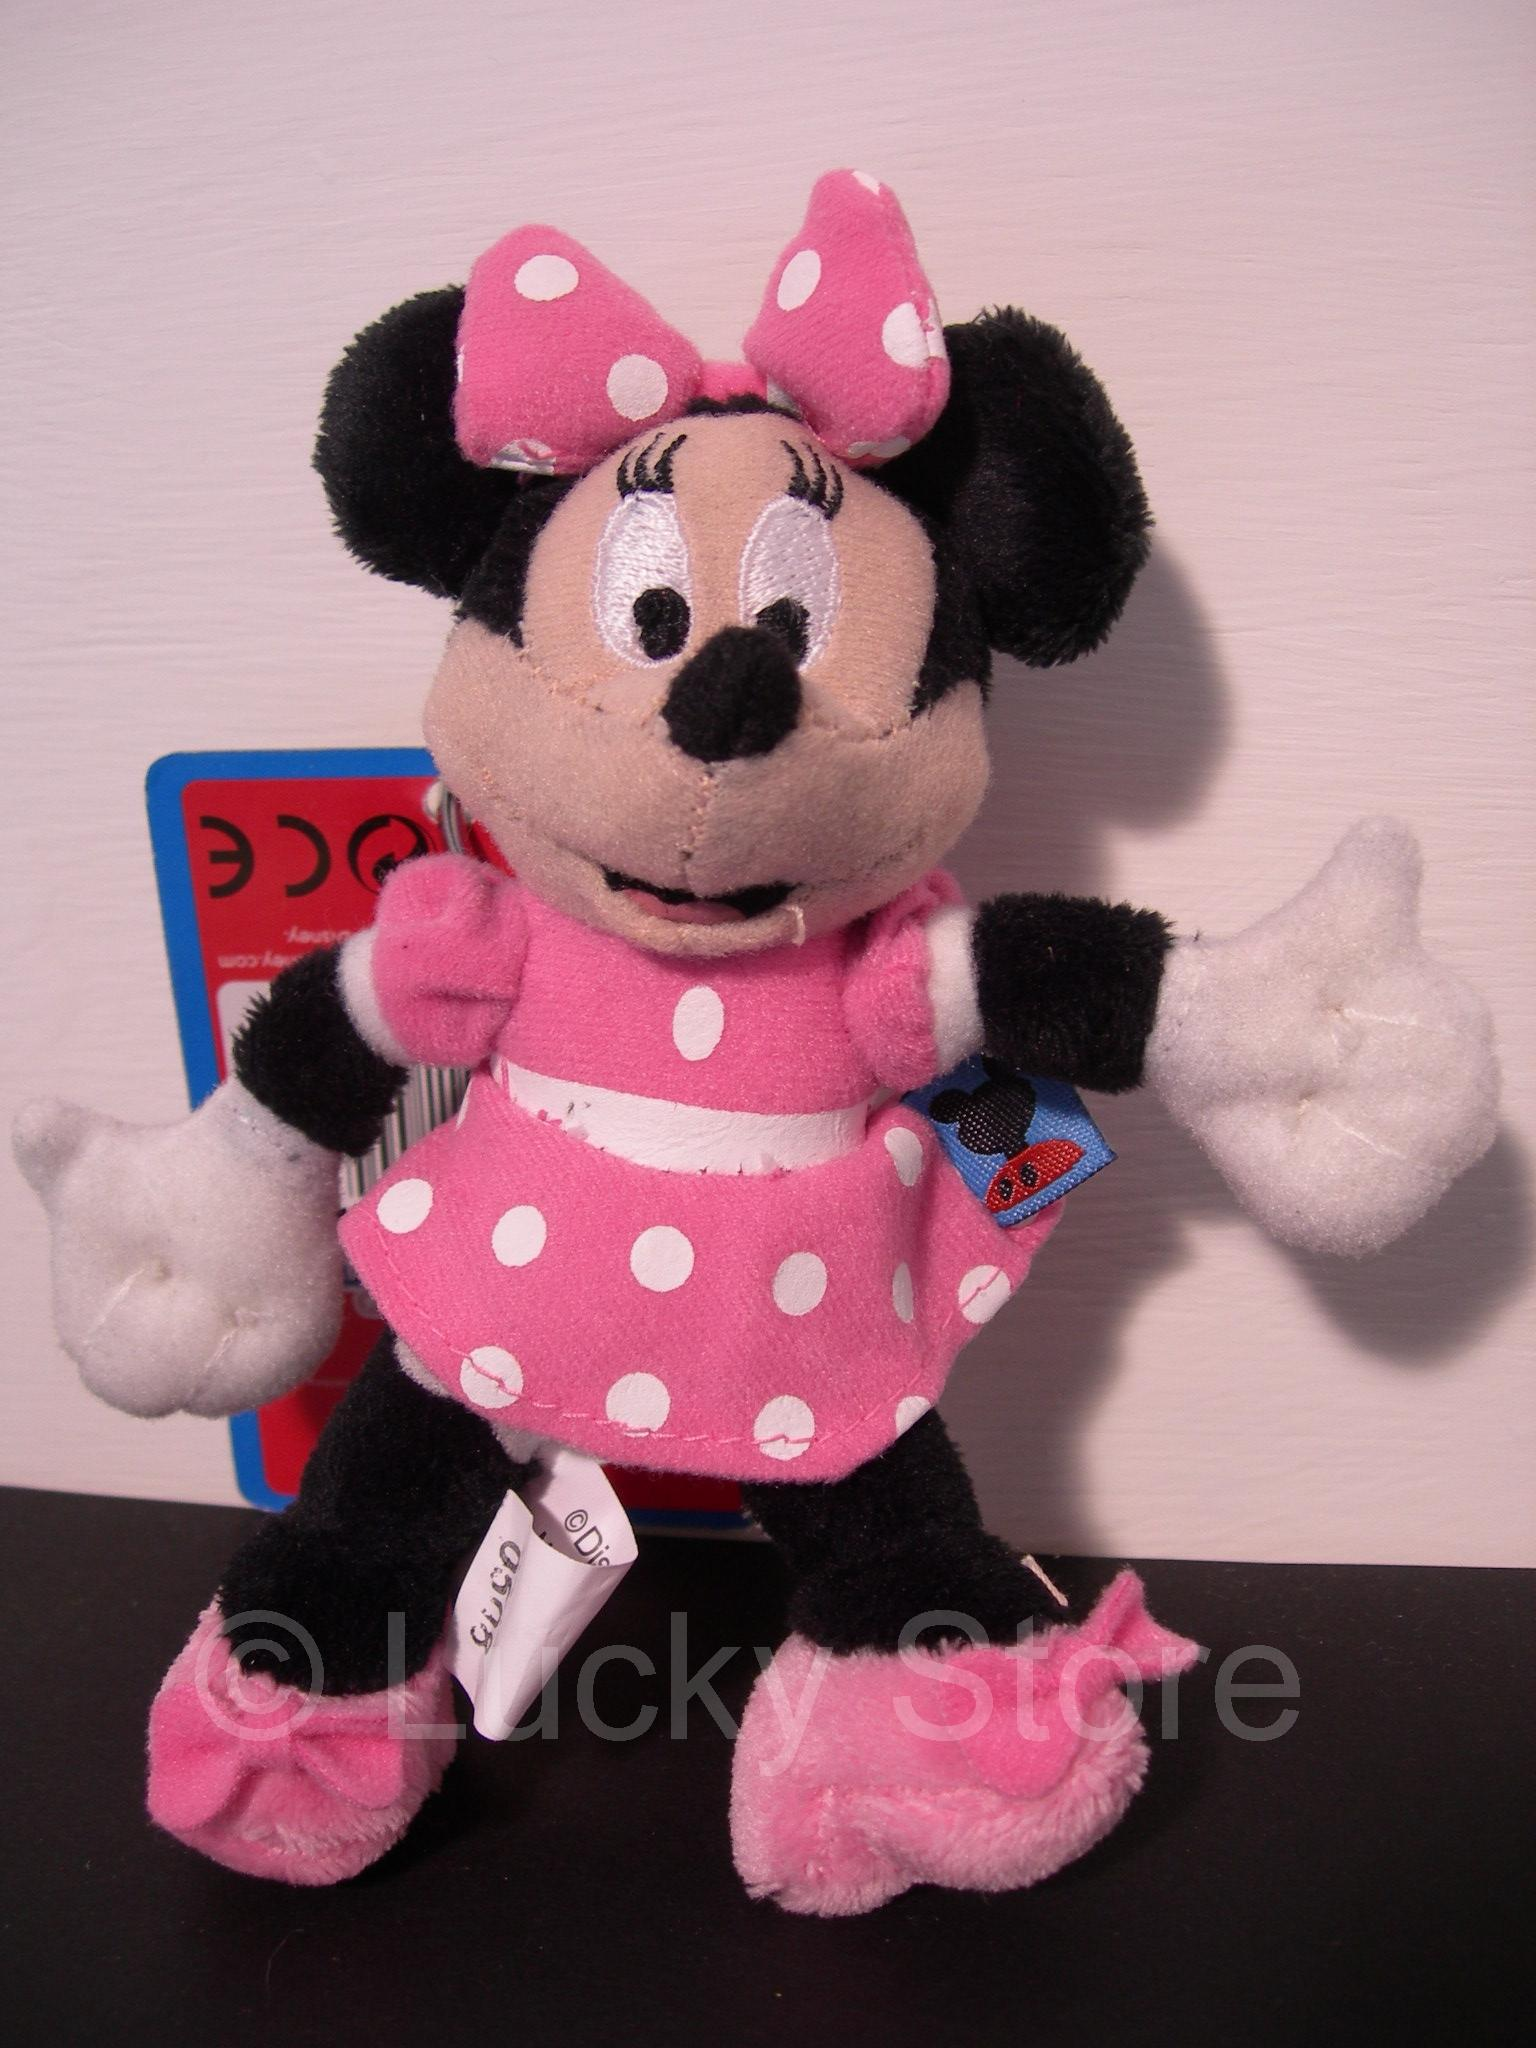 Disney Club House Minnie portachiavi peluche